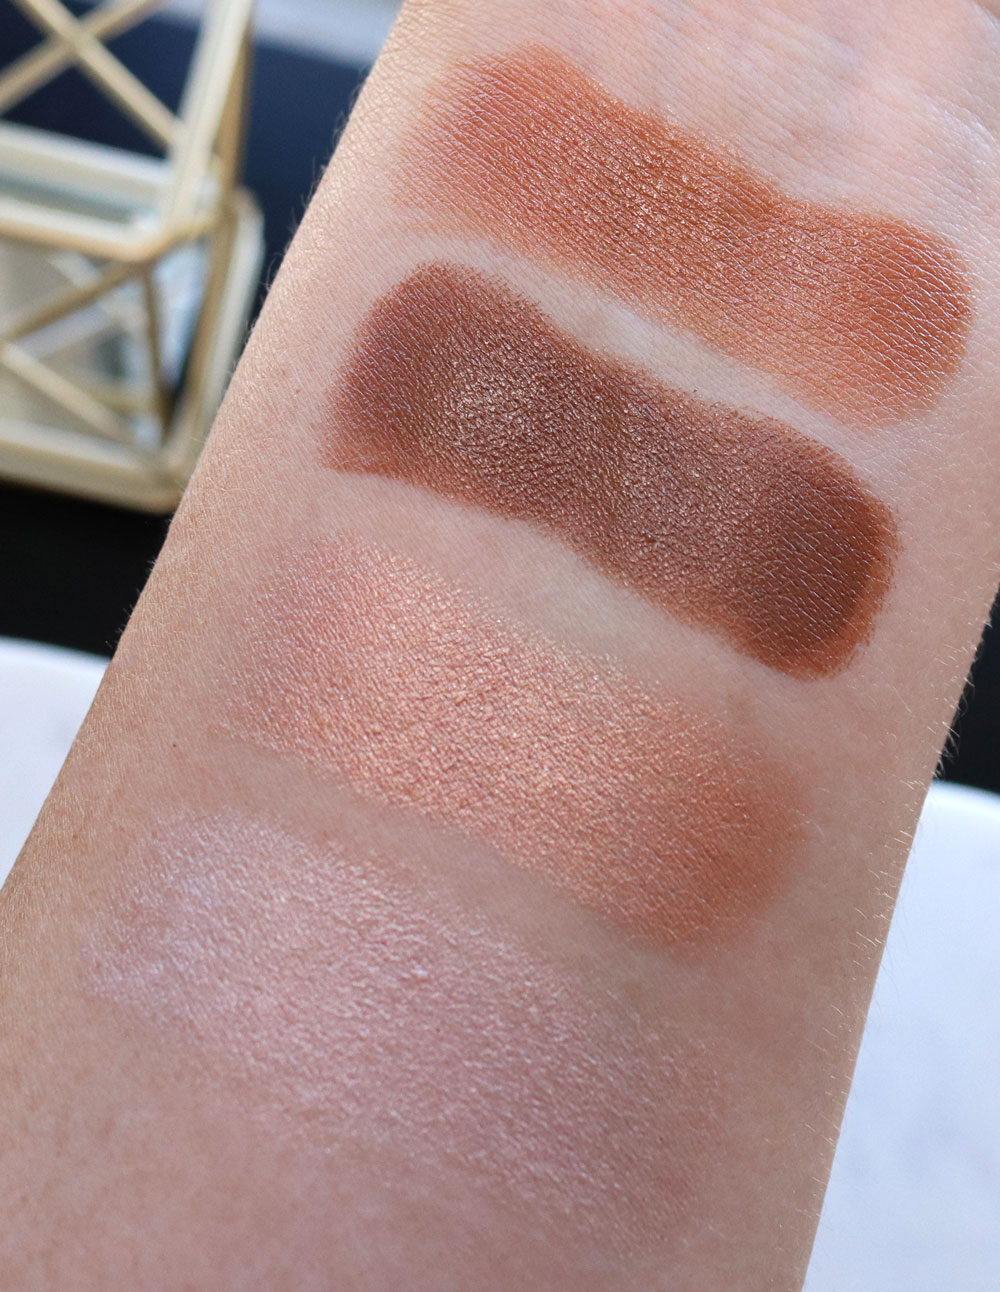 Physicians Formula Organic Wear Stick Contour Bronzer and Highlighter Swatches